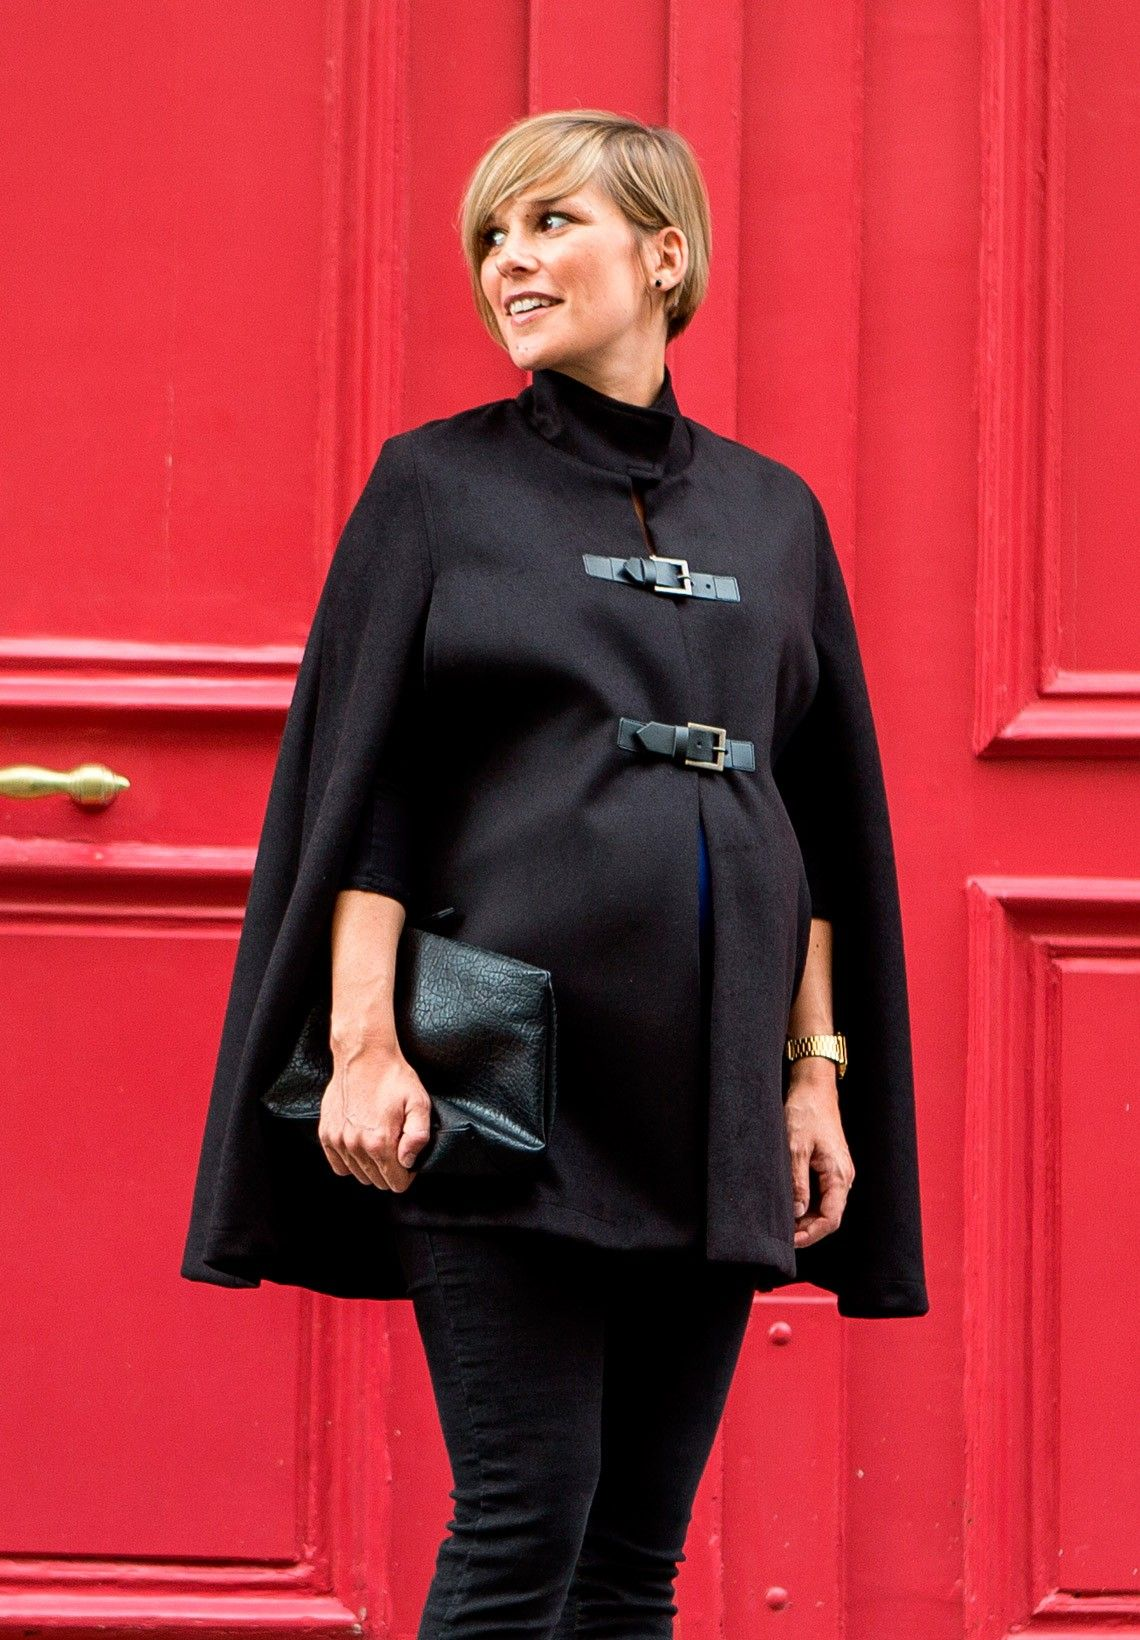 CAPE - Manteau grossesse | Get Inspired! Maternity Fashion